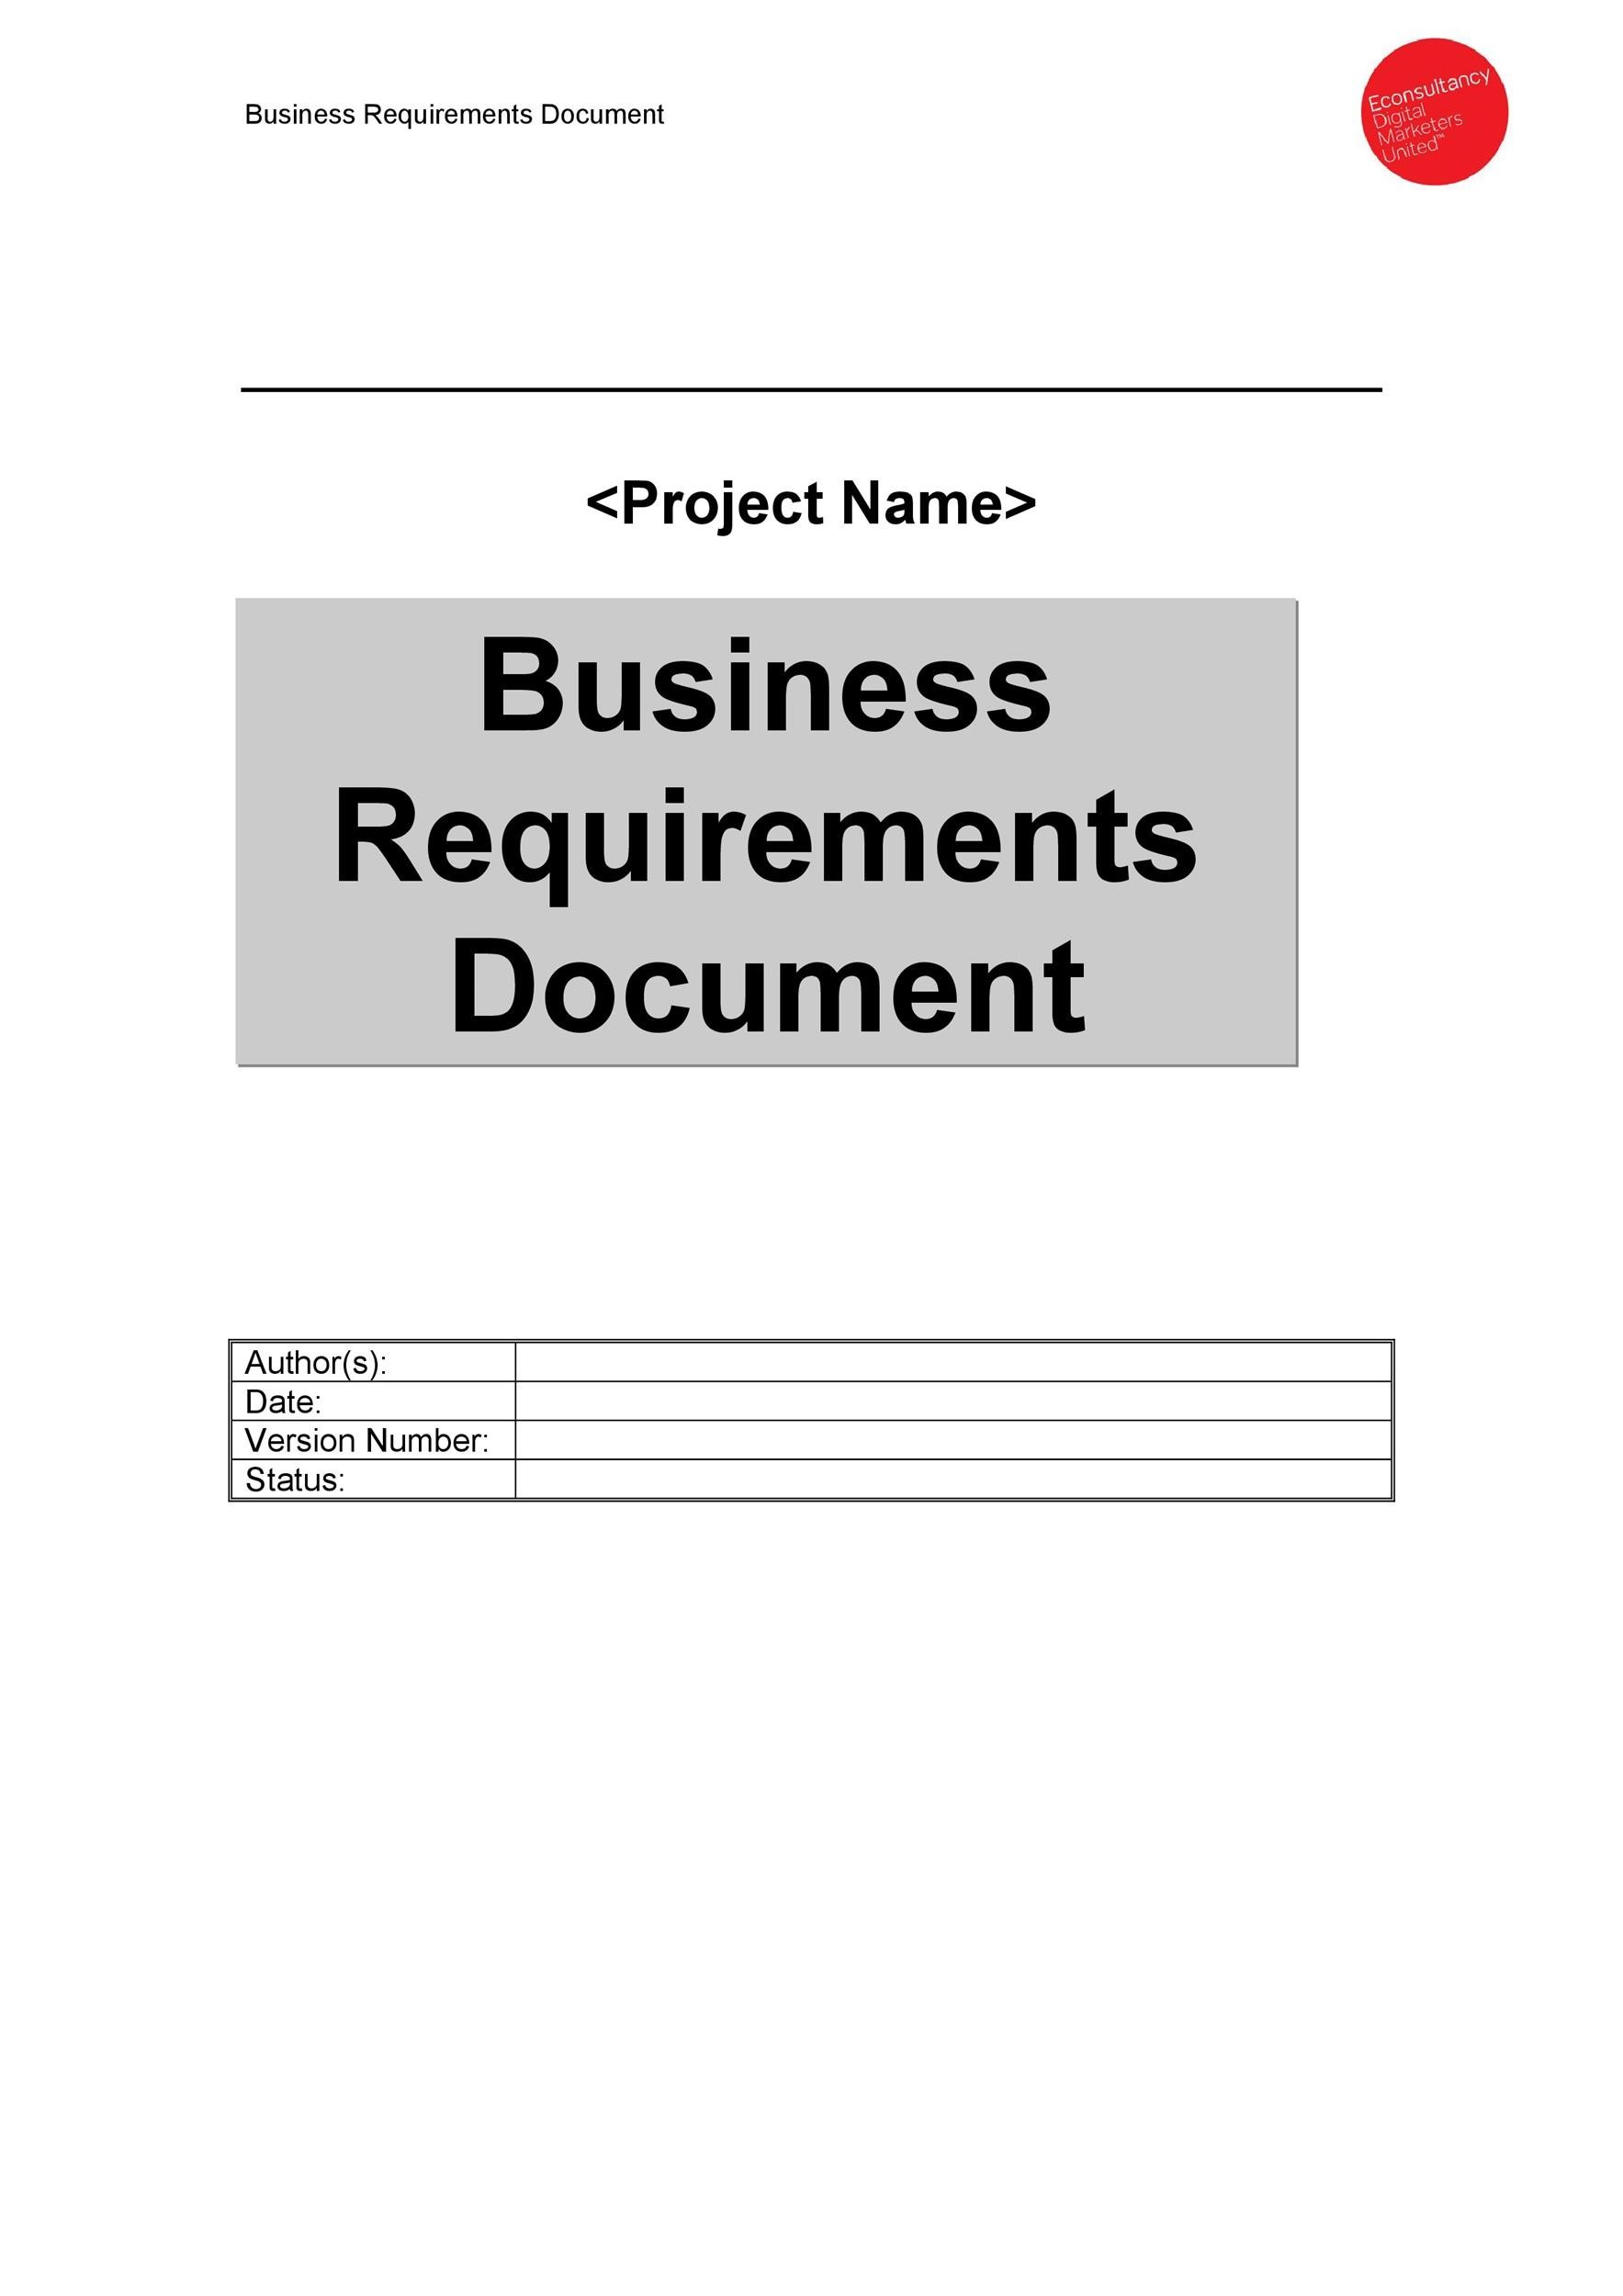 40 simple business requirements document templates template lab free business requirements document template 19 accmission Image collections